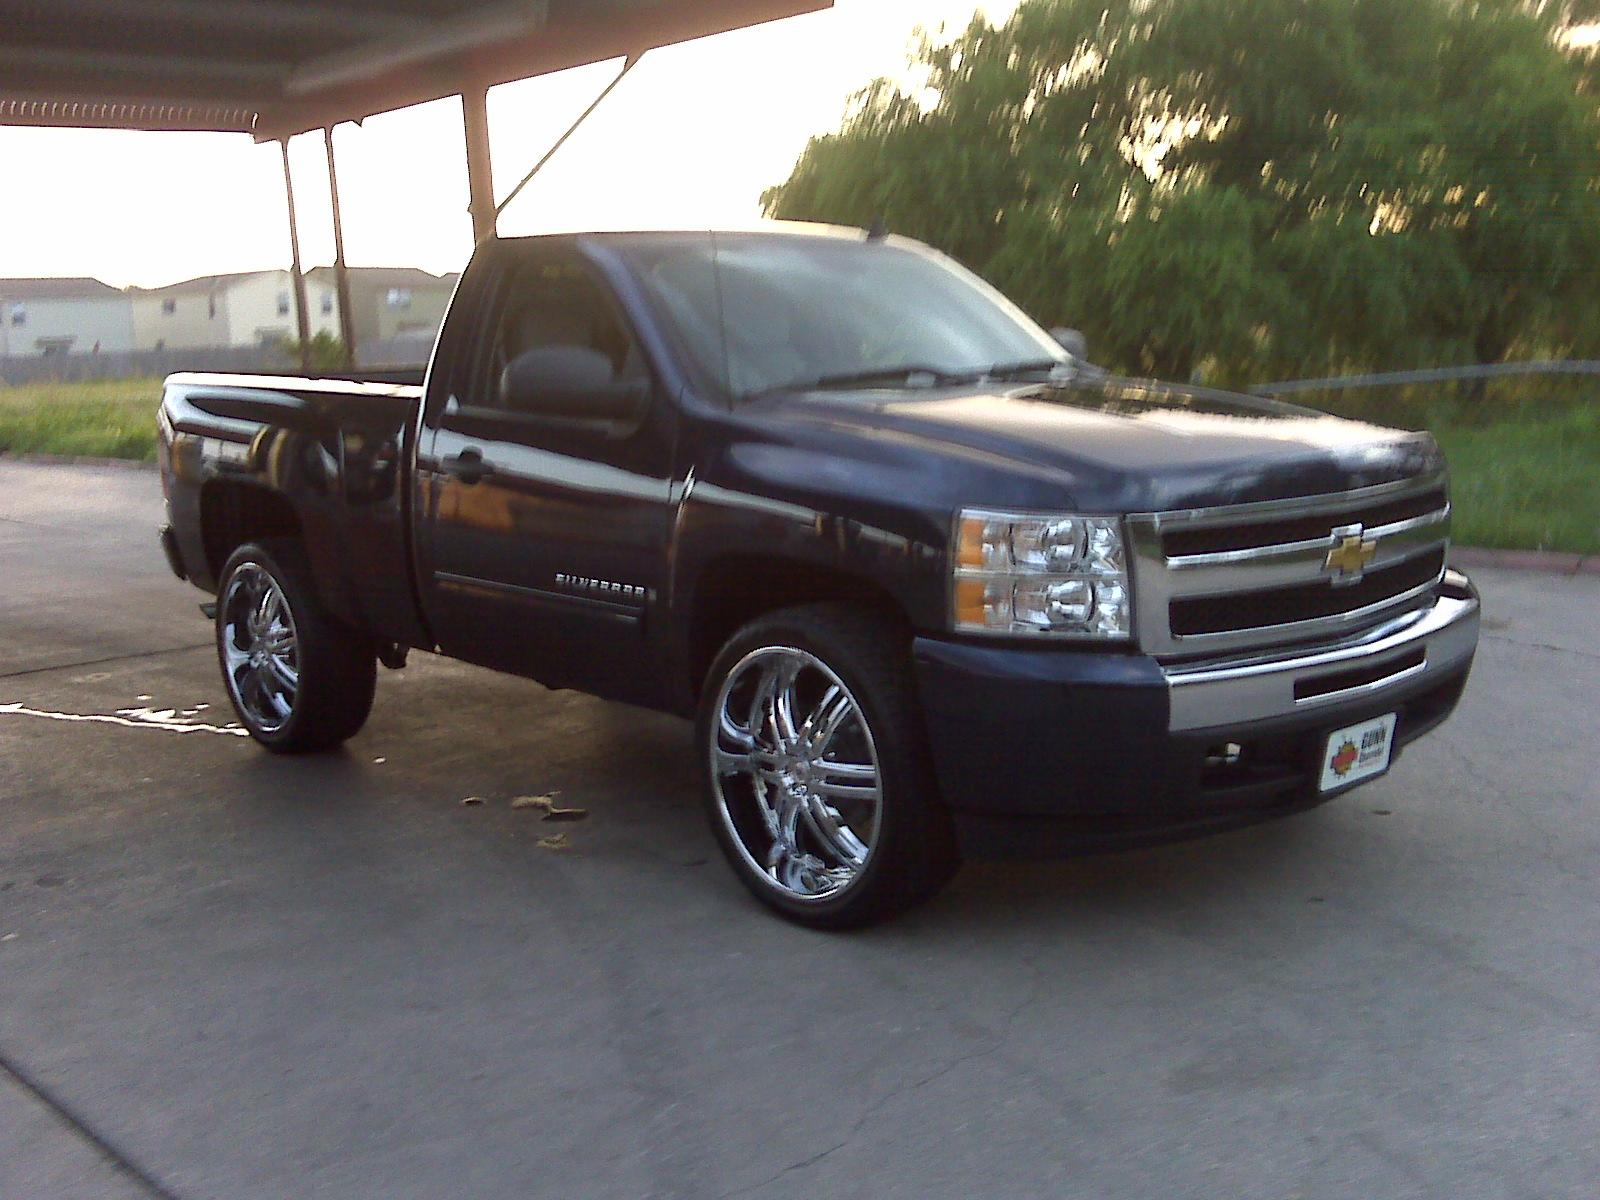 wackoe 13 2009 chevrolet silverado 1500 regular cab specs. Black Bedroom Furniture Sets. Home Design Ideas